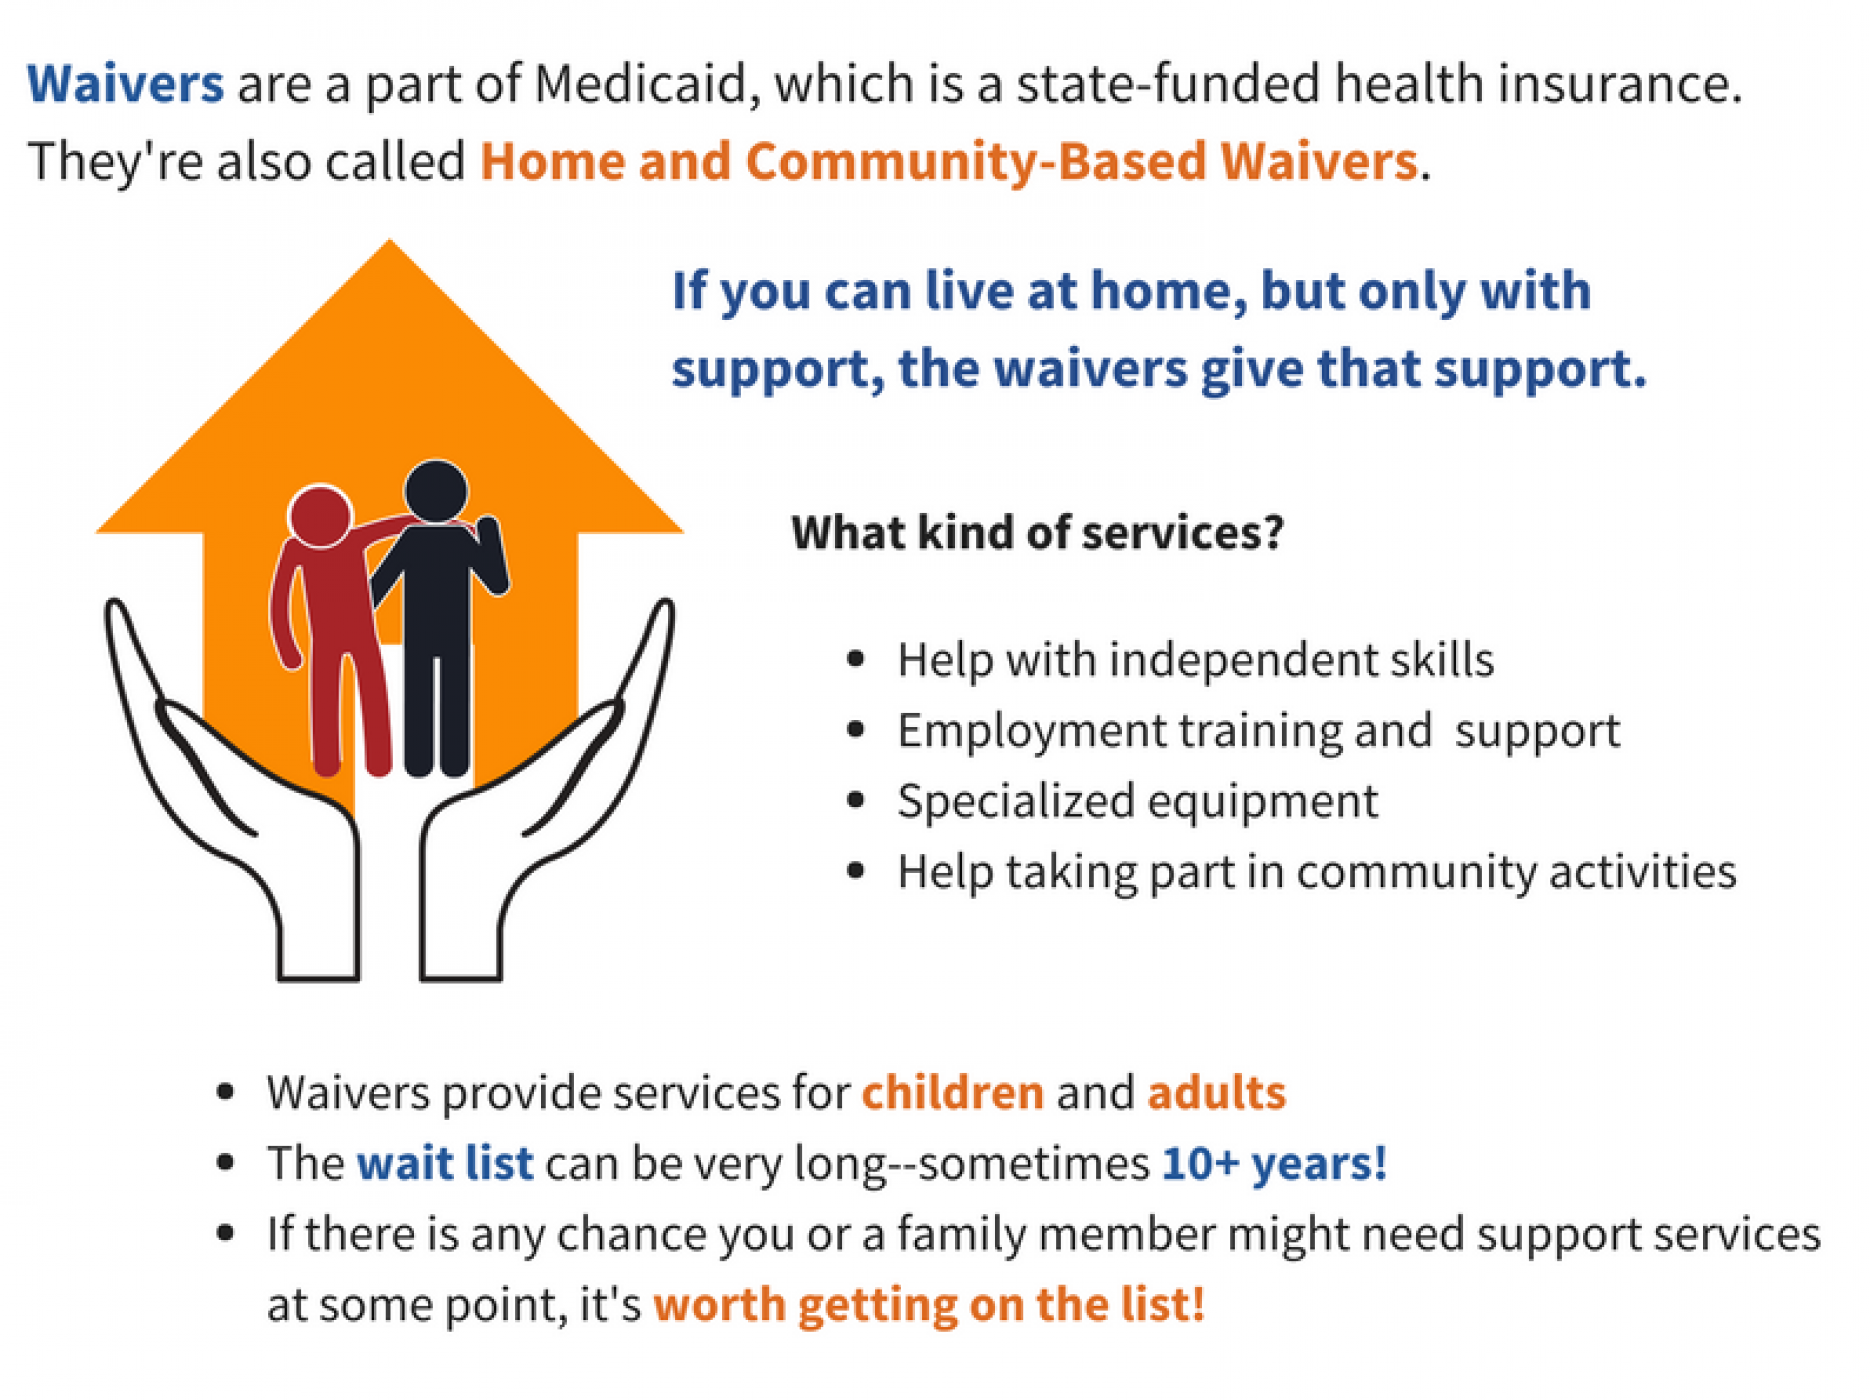 Image of two hands holding a house with two people in it. One person is helping the other. The text saysL Waivers are a part of Medicaid, which is a state-funded health insurance. They